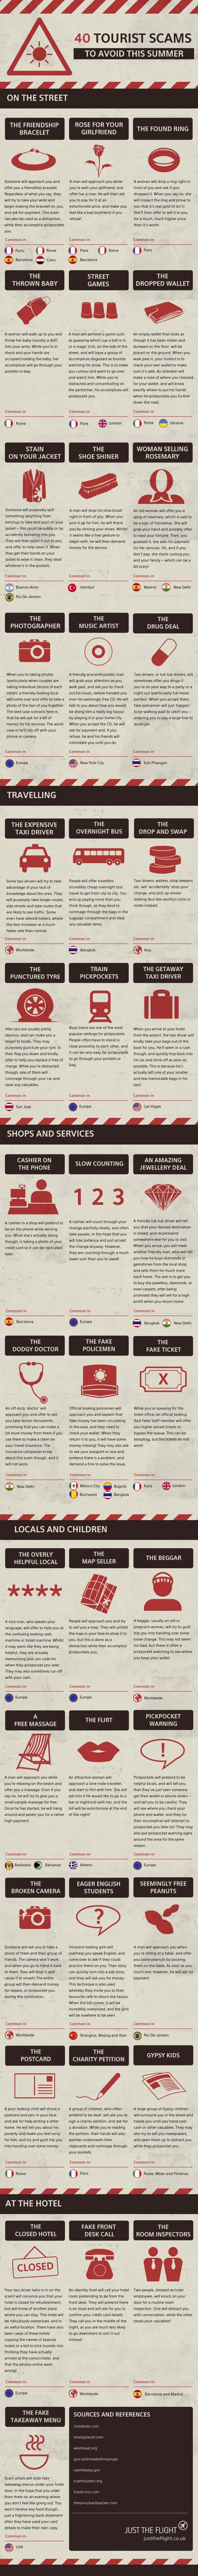 40 Most Notorious Tourist Scams   Daily Infographic